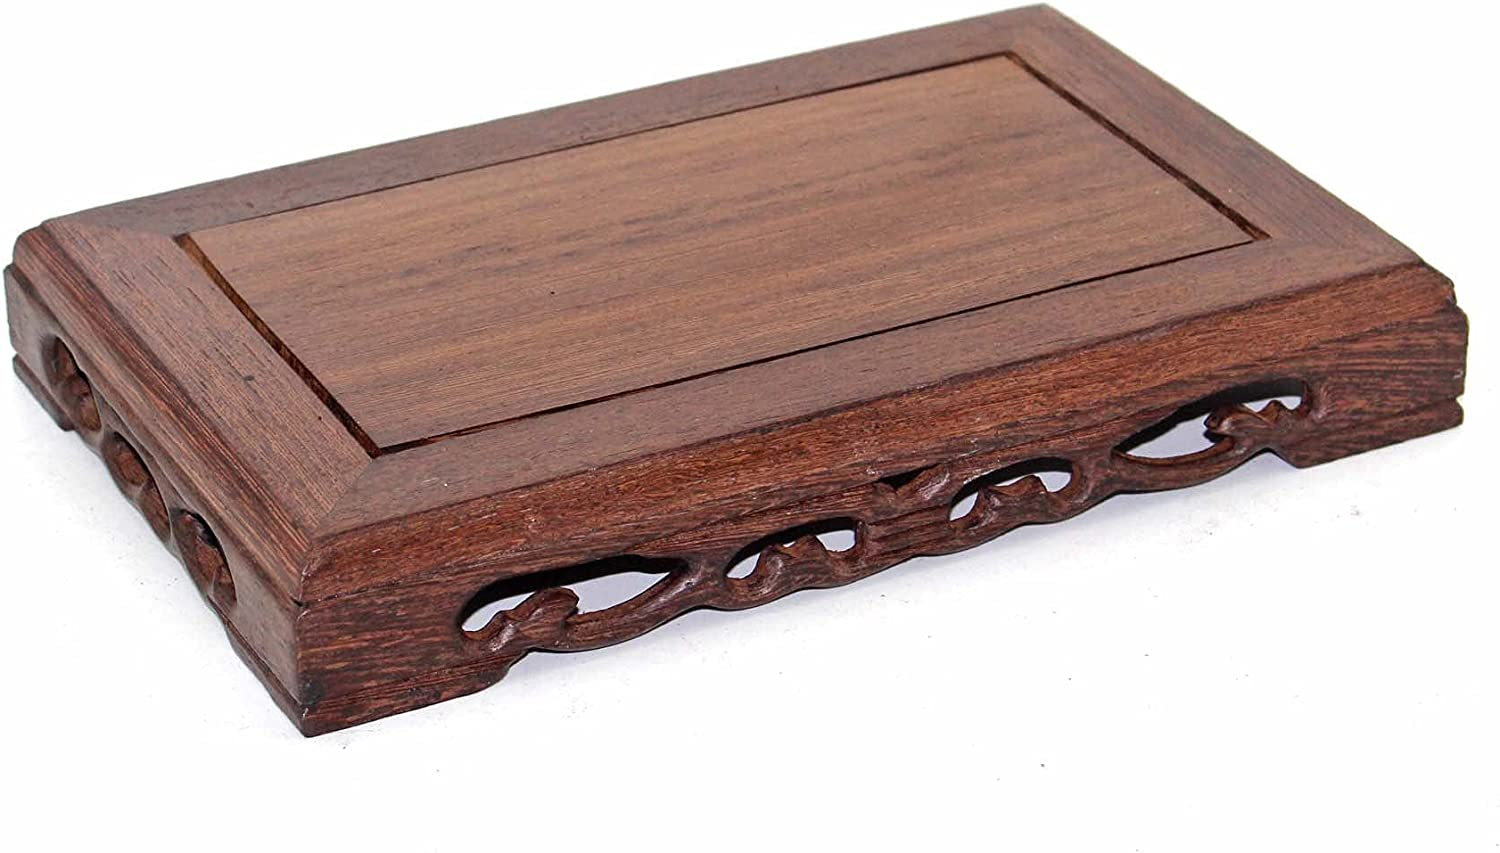 GOLDYWENDY Chinese Wooden Reservation Display Stand Surprise price Carved Solid W Mahogany